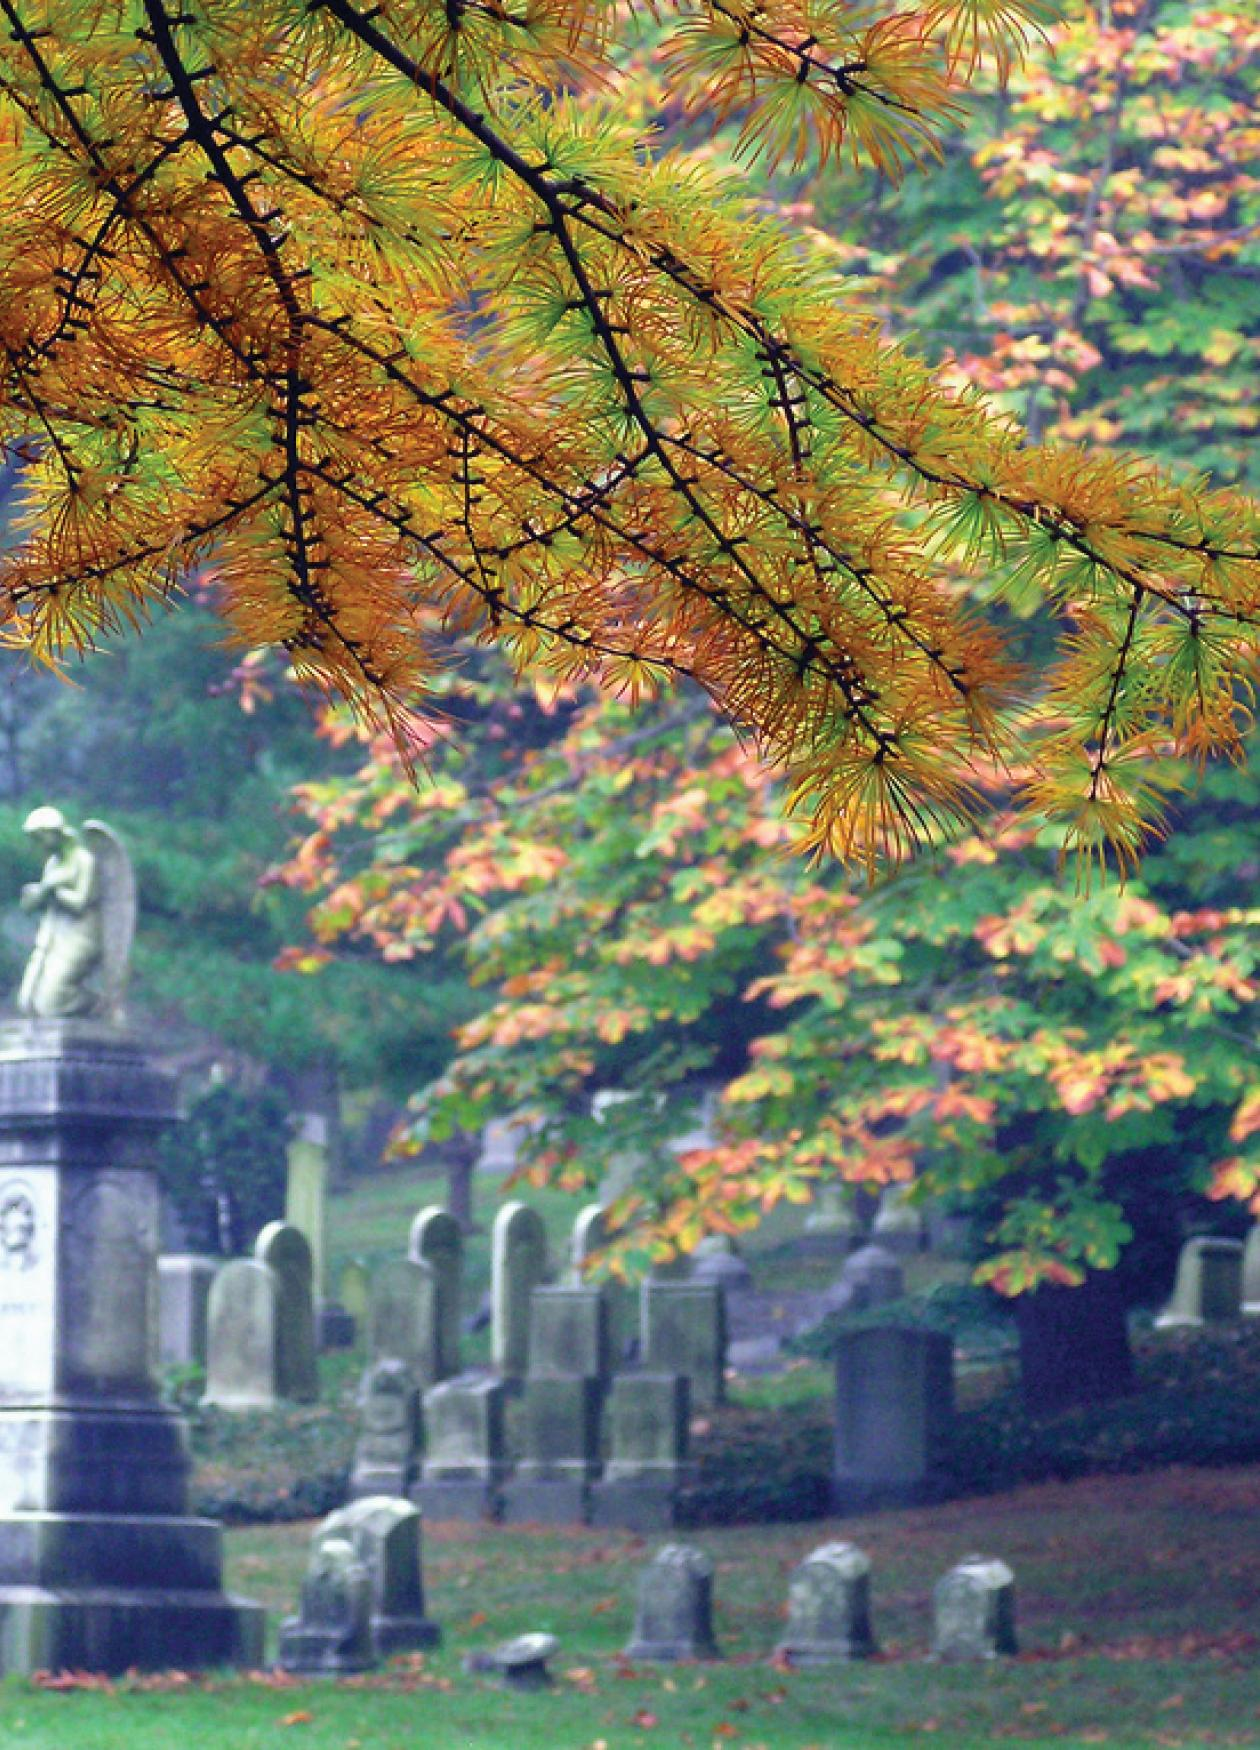 Photograph of cemetery with overhanging trees